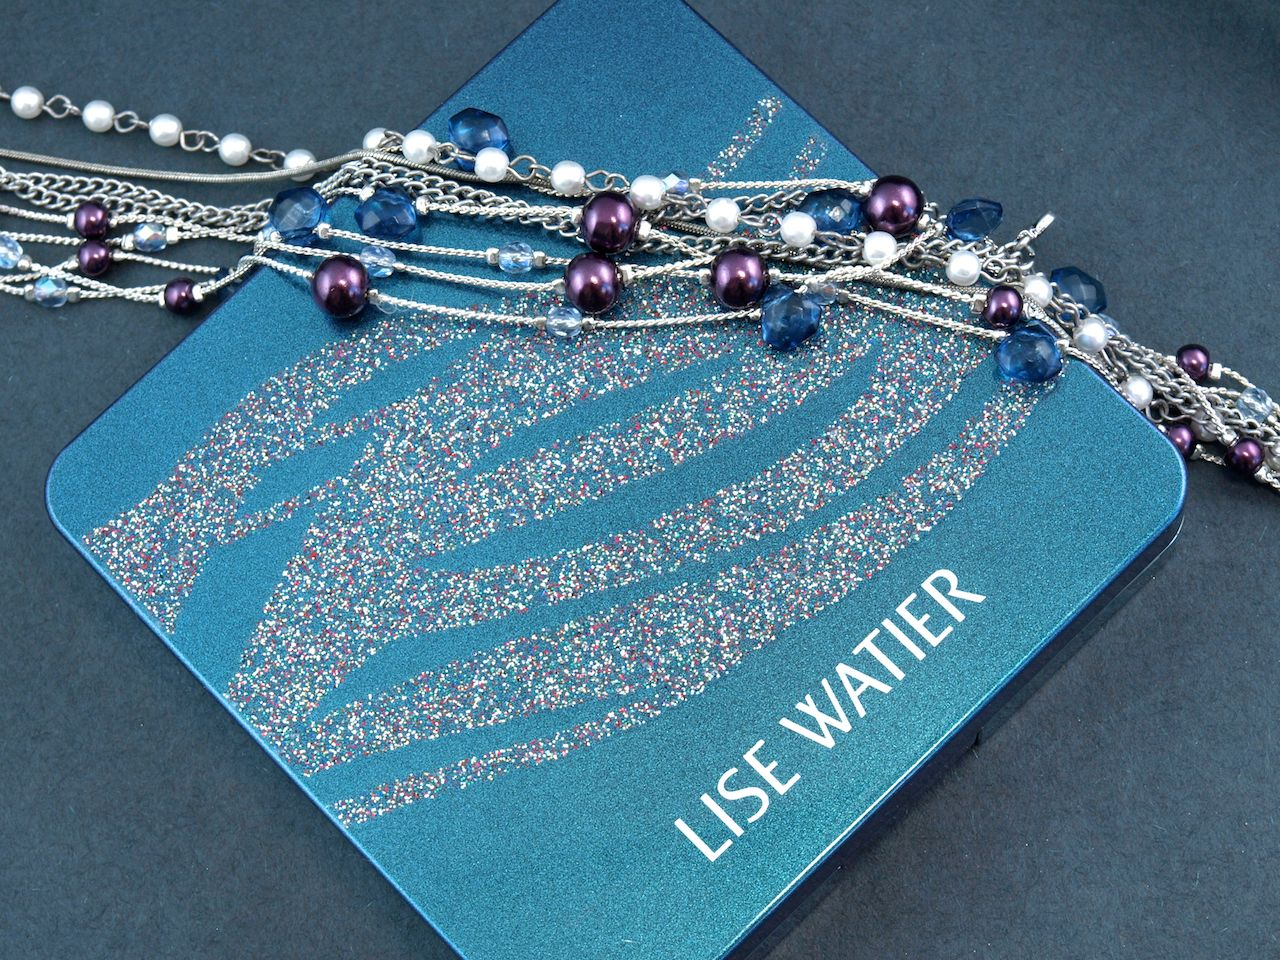 Lise Watier Aurora Winter 2014 Collection: Review and Swatches